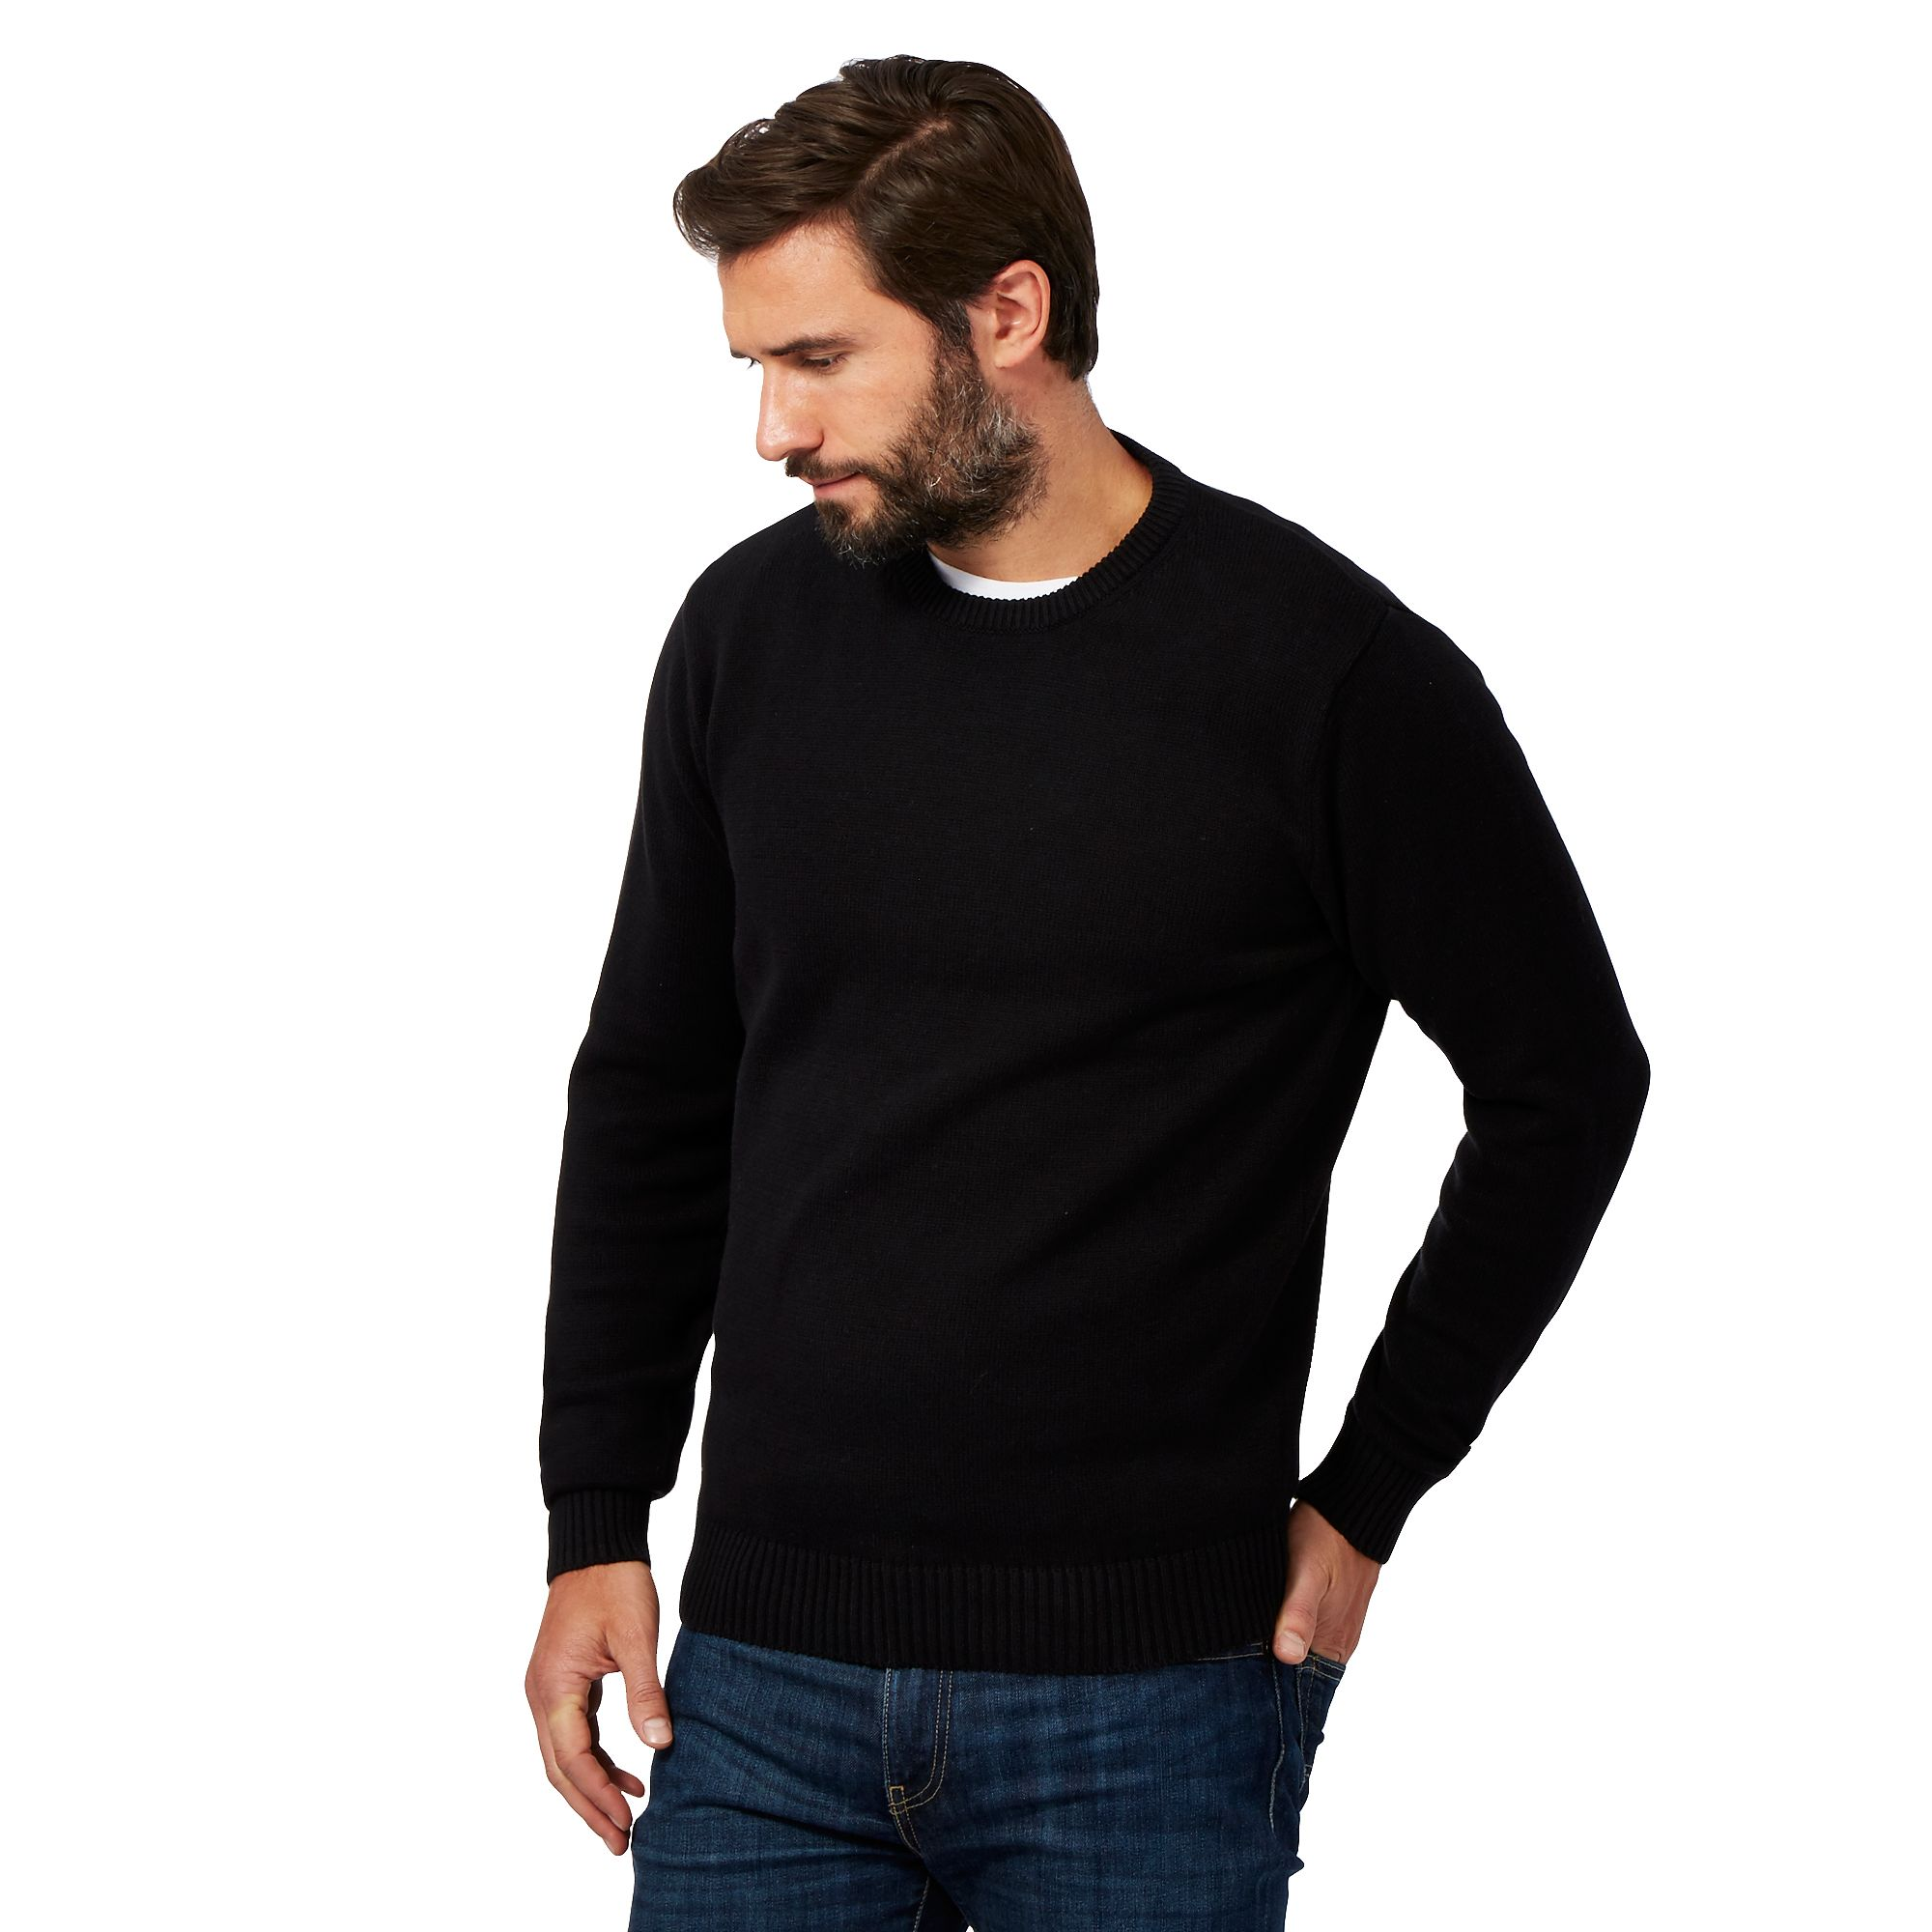 Black | Boasting lots of lovely, Italian lambswool, this durable and warming, classic crew neck jumper is perfect for keeping cosy this season and far beyond. A solid and versatile cold-weather essential, this lambswool crew neck jumper will partner well with both your work and weekend staples; it's a great all-rounder. Find your favourite, timeless colour today, and stylishly feel toasty warm.